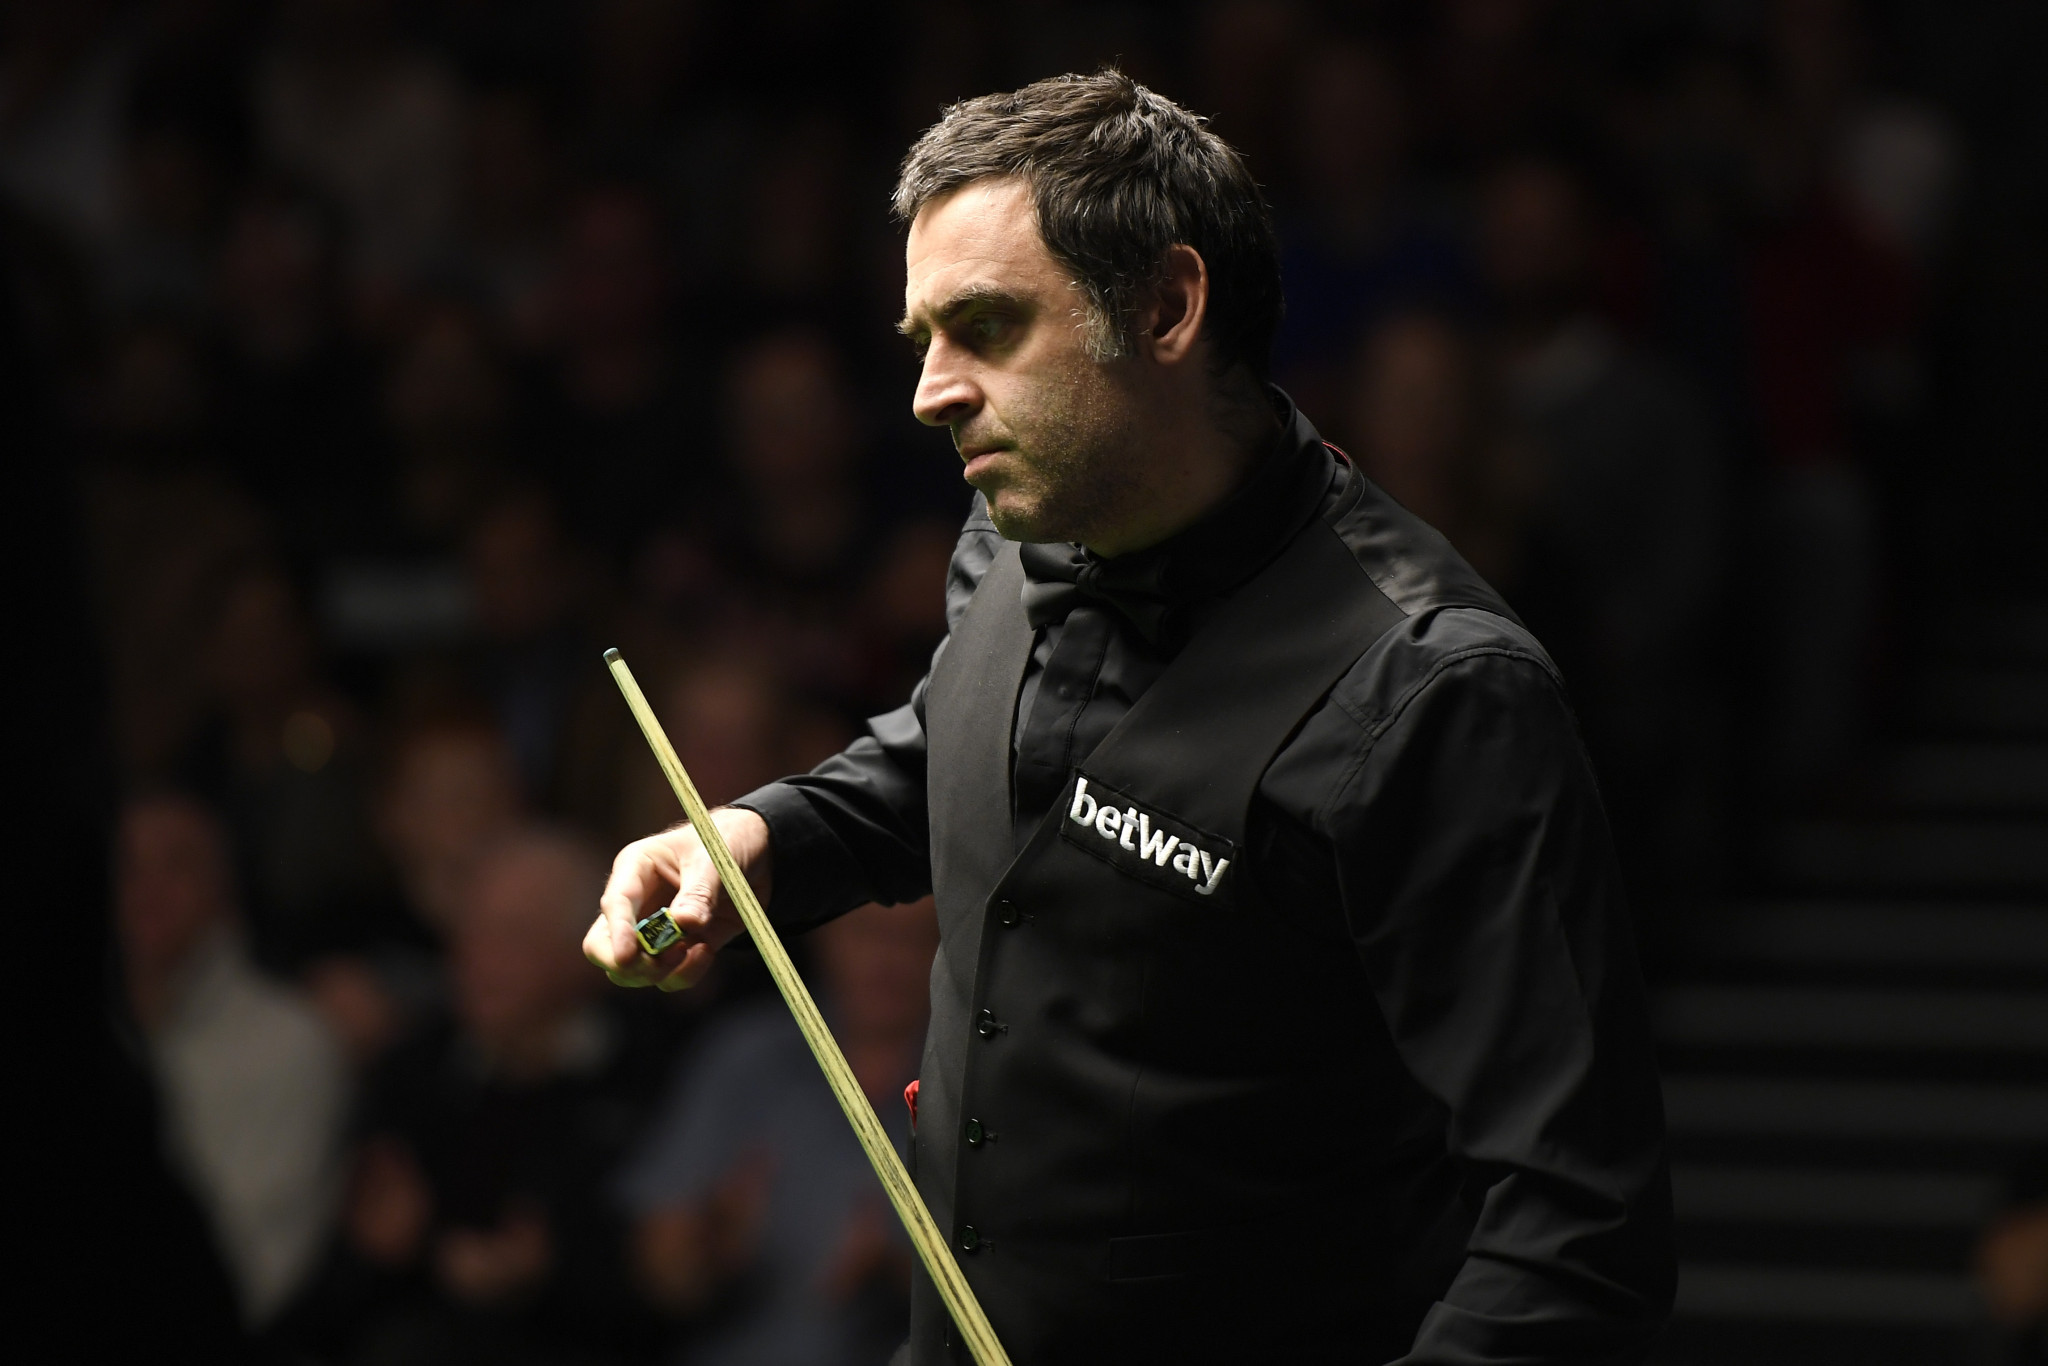 Defending champion O'Sullivan eyeing seventh World Snooker Championship win in Sheffield